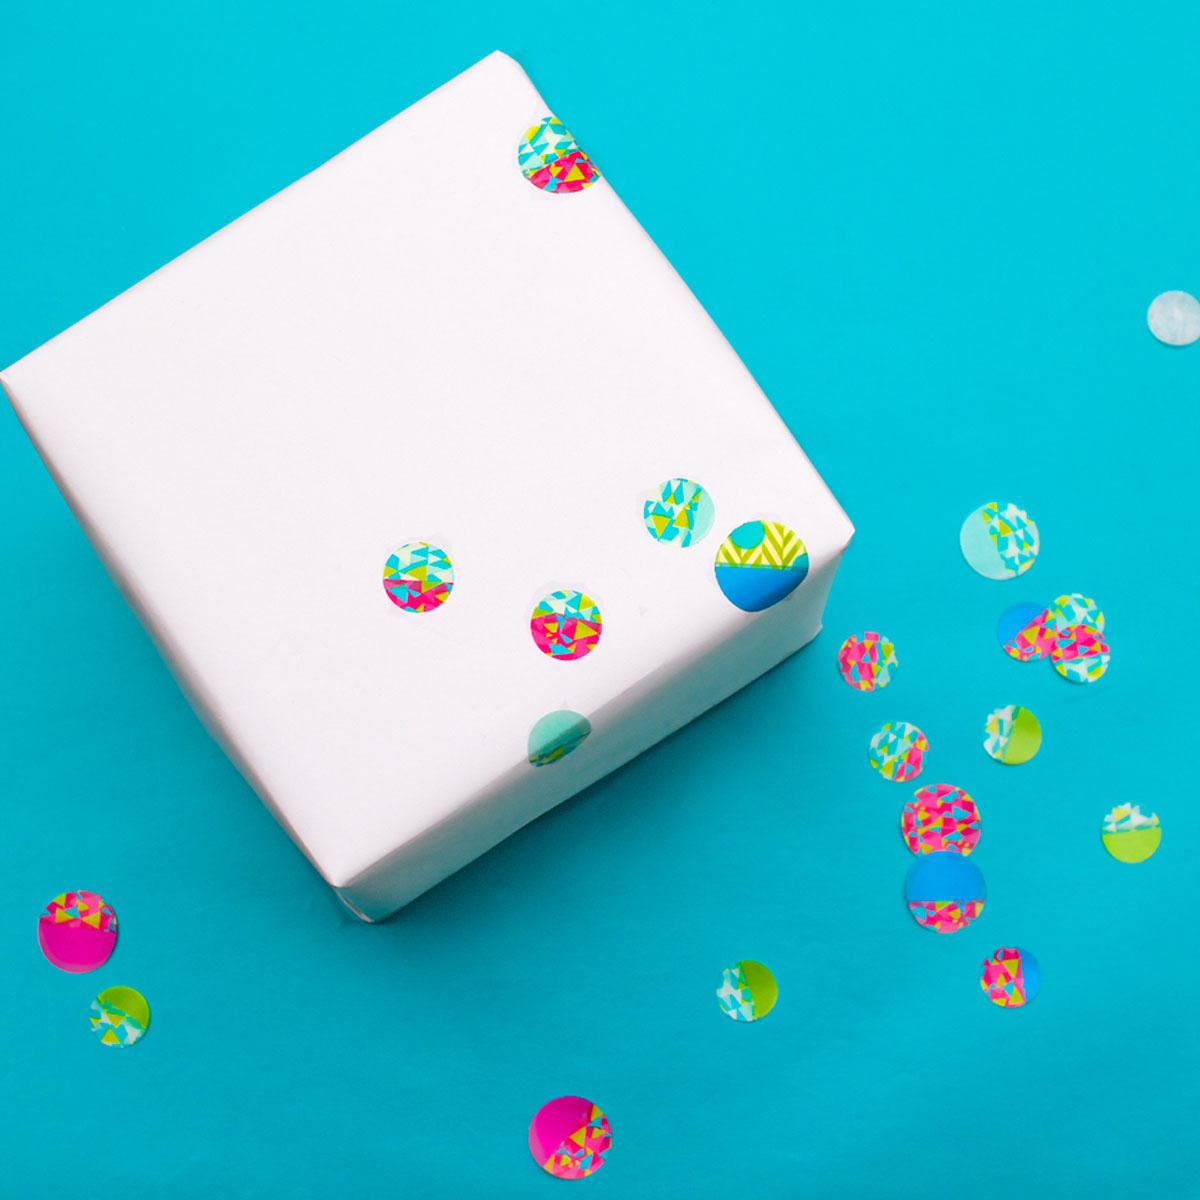 DIY Confetti-dot gift wrapping for a kid's birthday | Step 3: Apply the dots to the paper | CorinnaWraps.wordpress.com